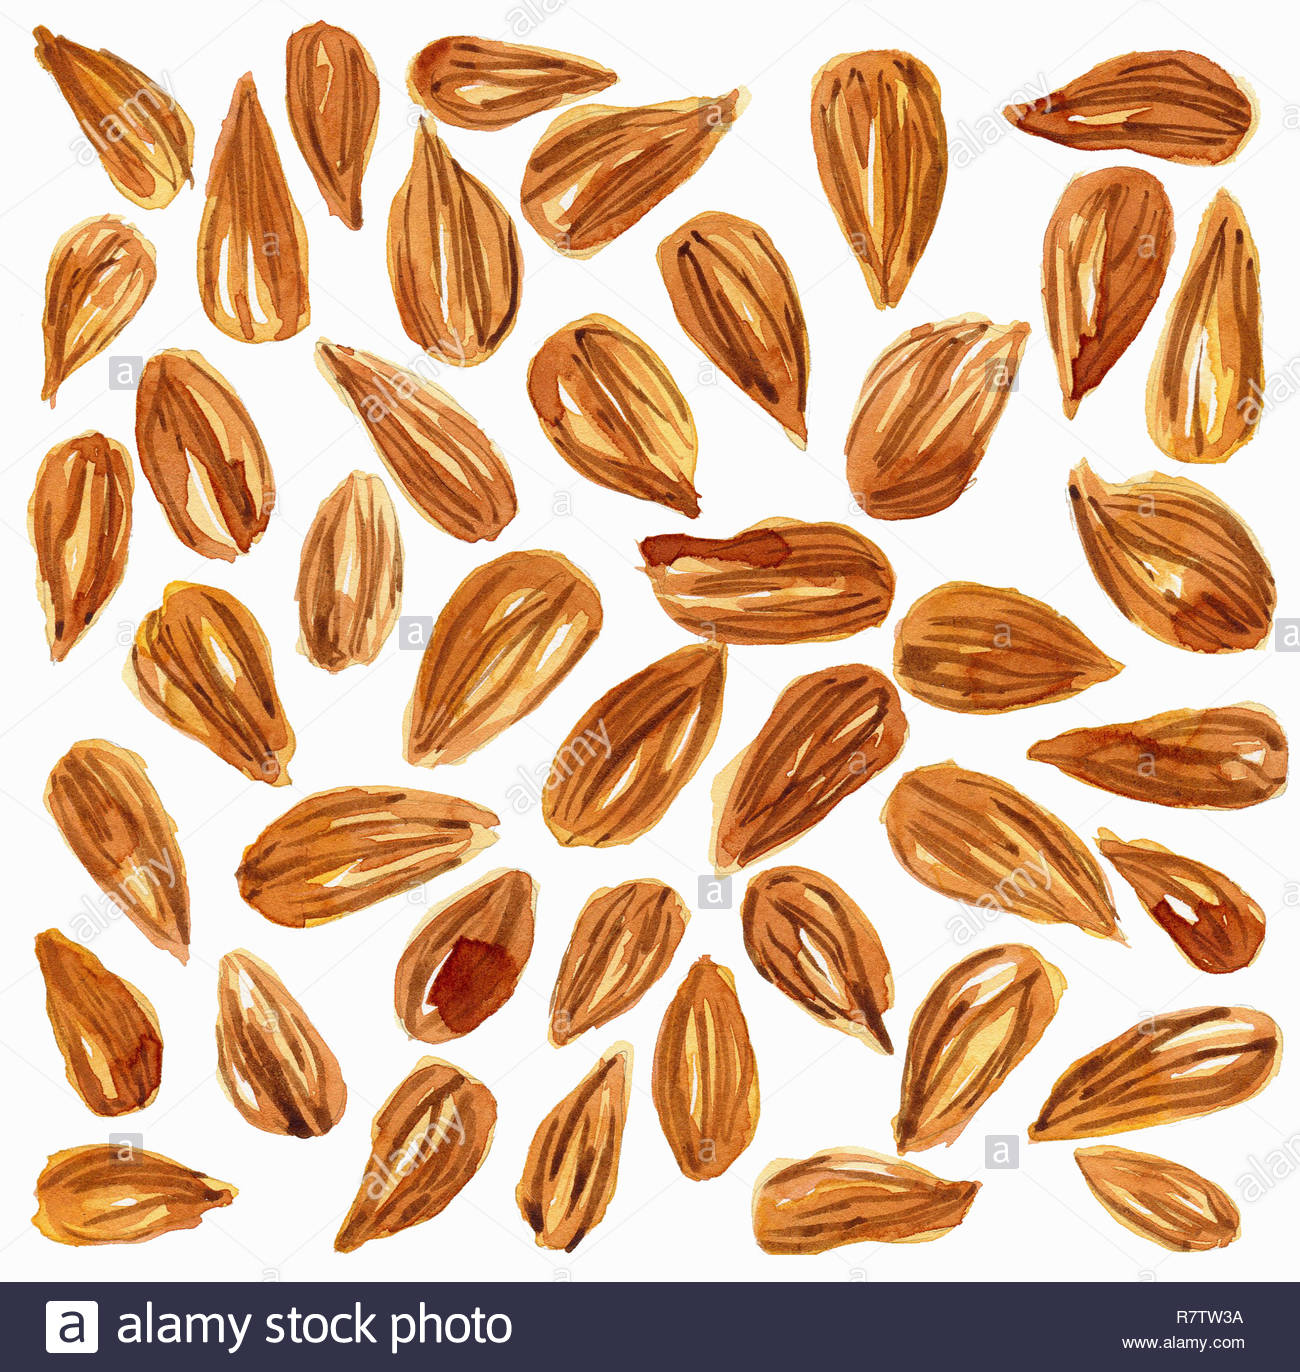 Watercolor painting of almonds Stock Photo